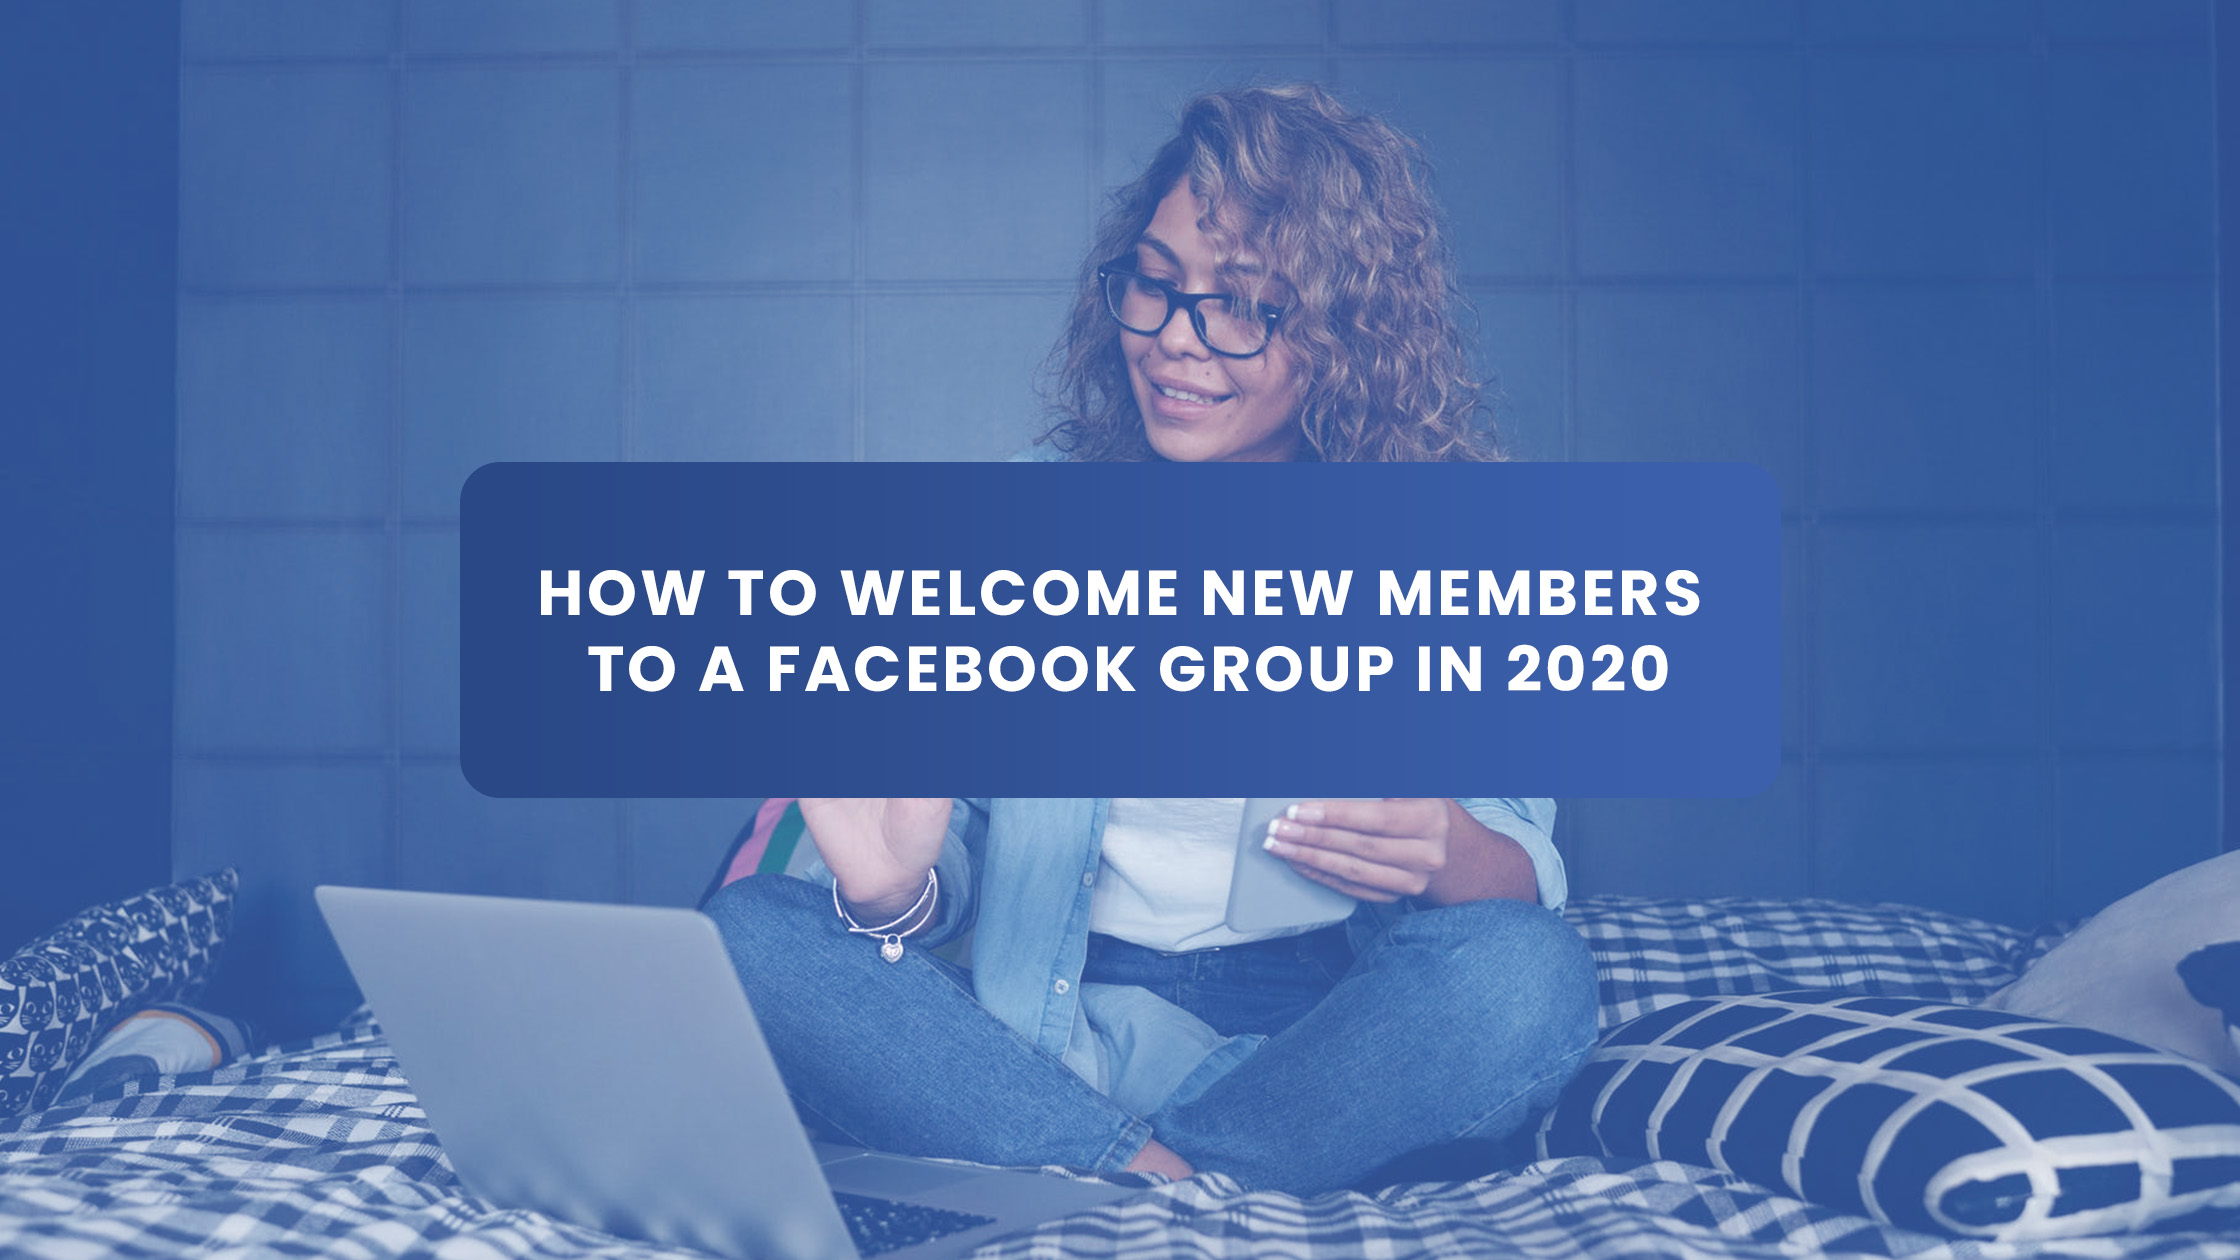 How to Welcome New Members to a Facebook Group in 2020